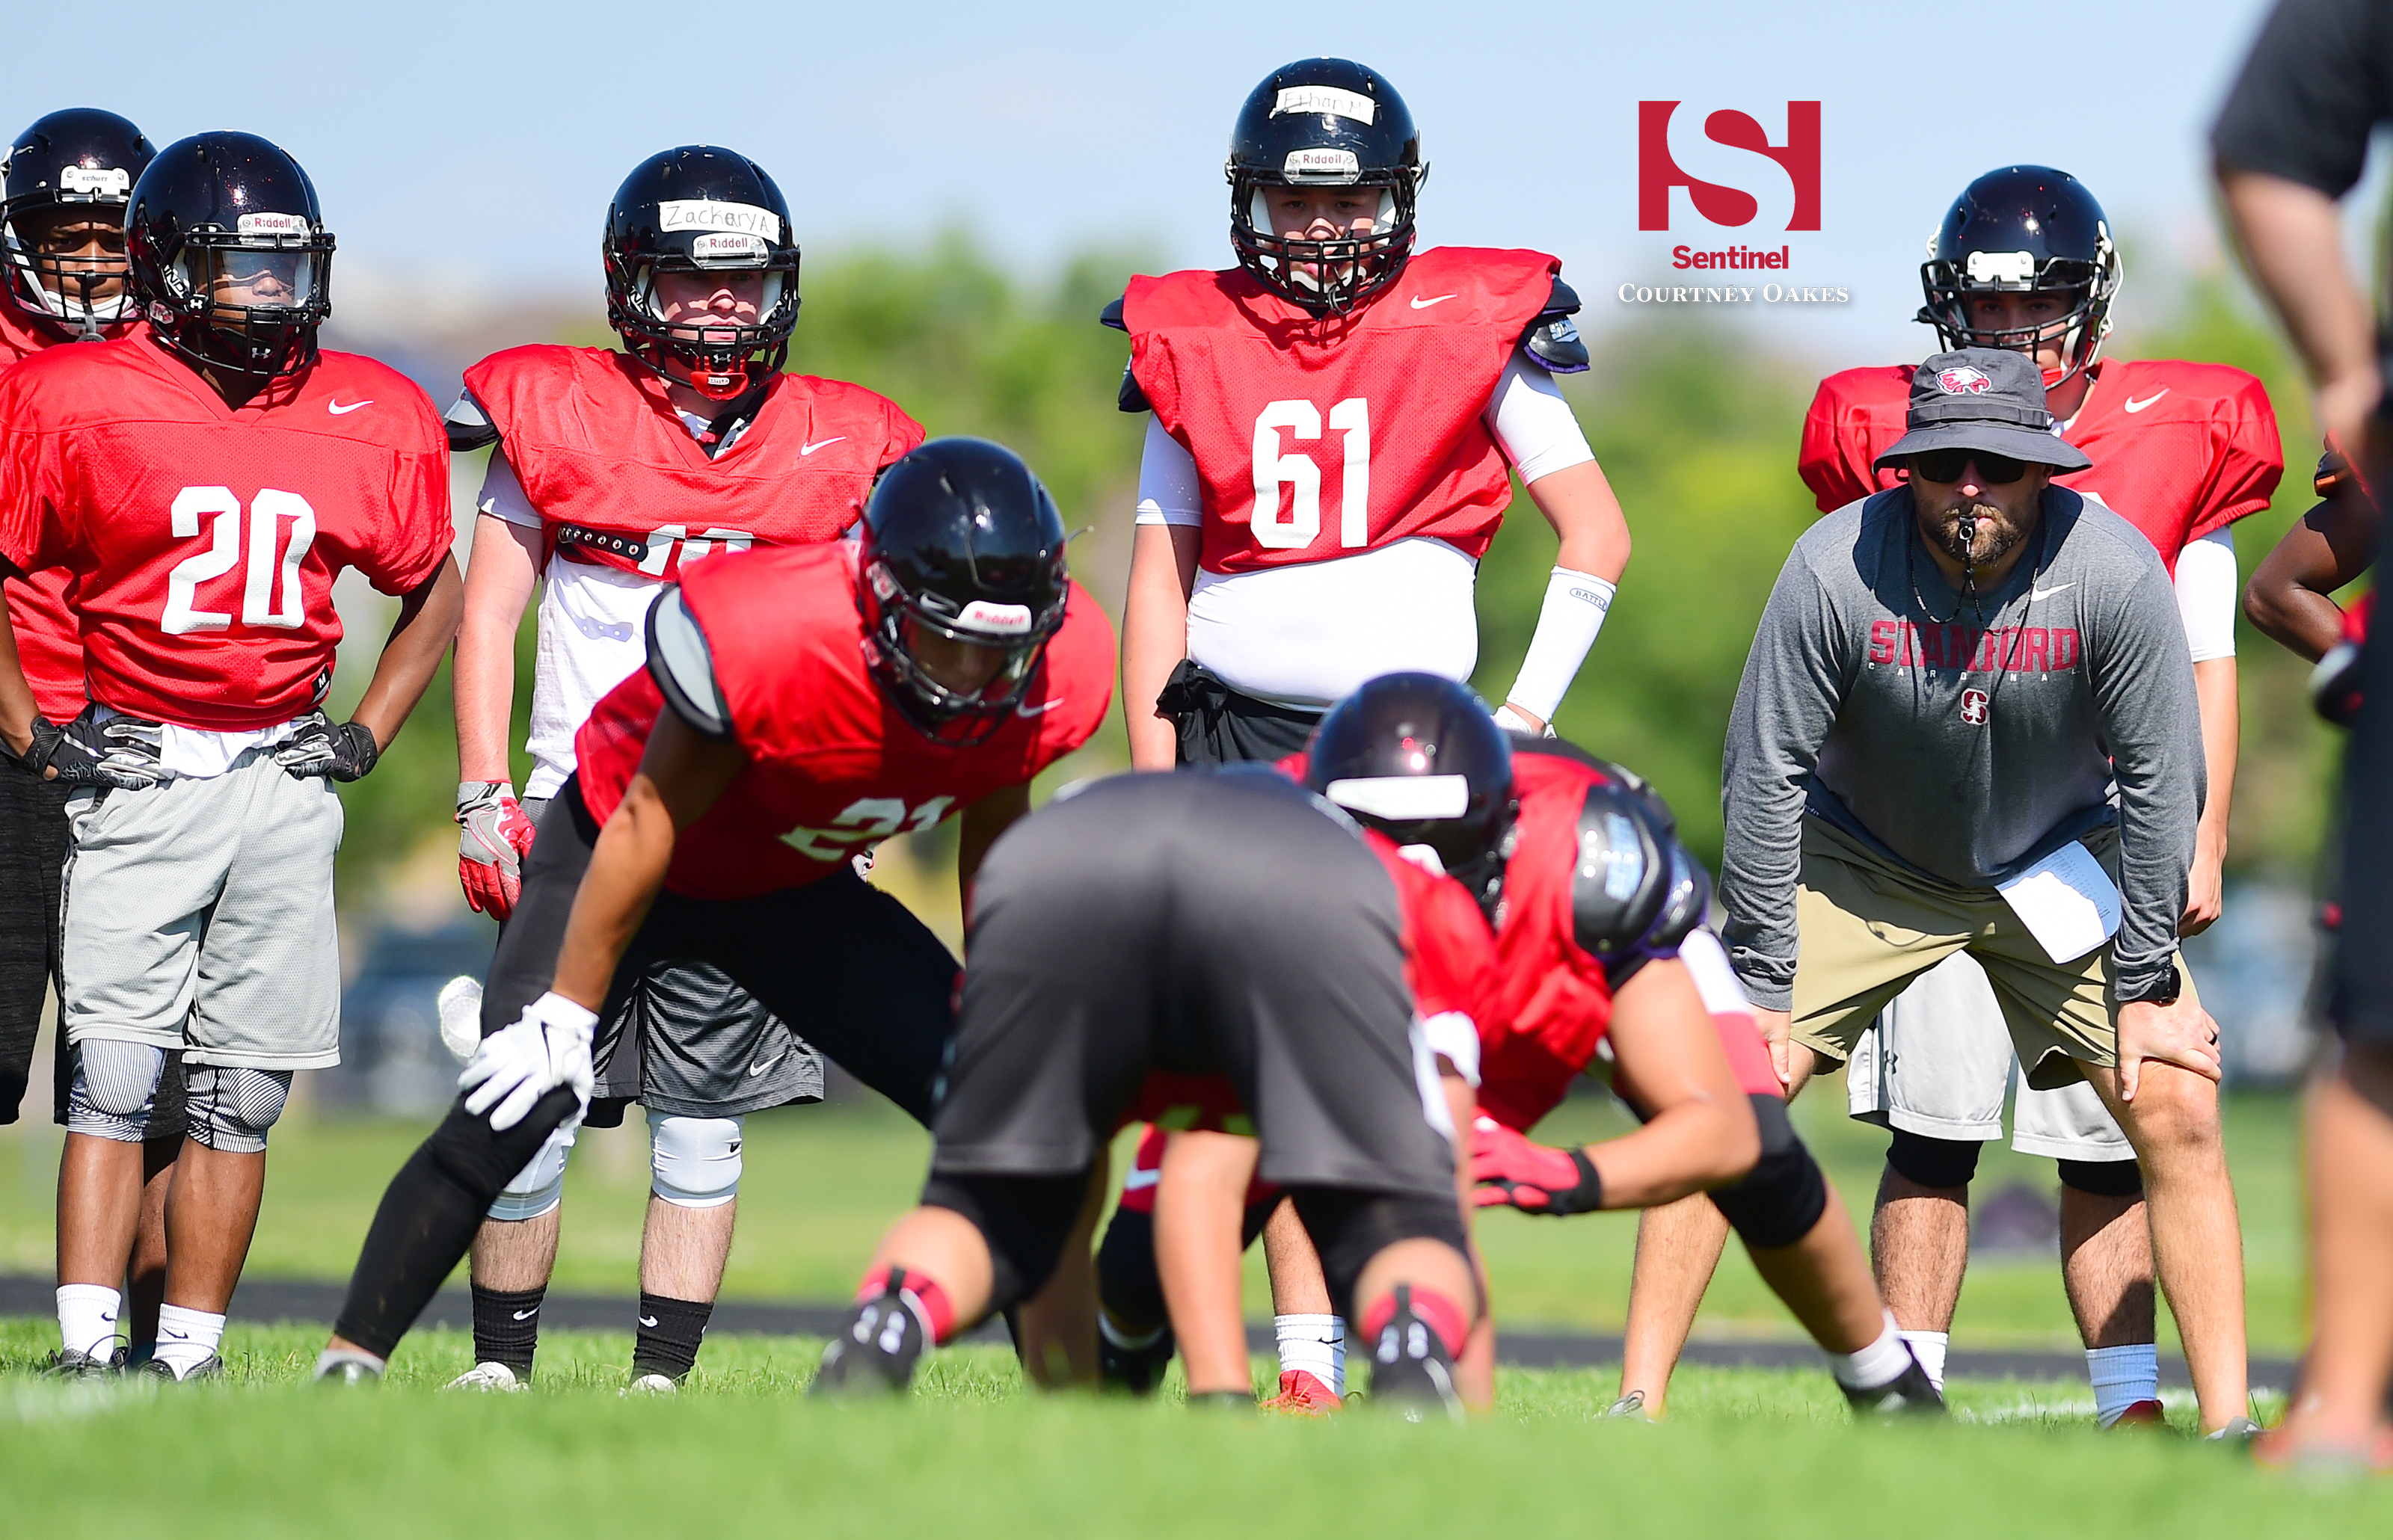 Football Delaney Resigns From Eaglecrest Job One Game Into Season